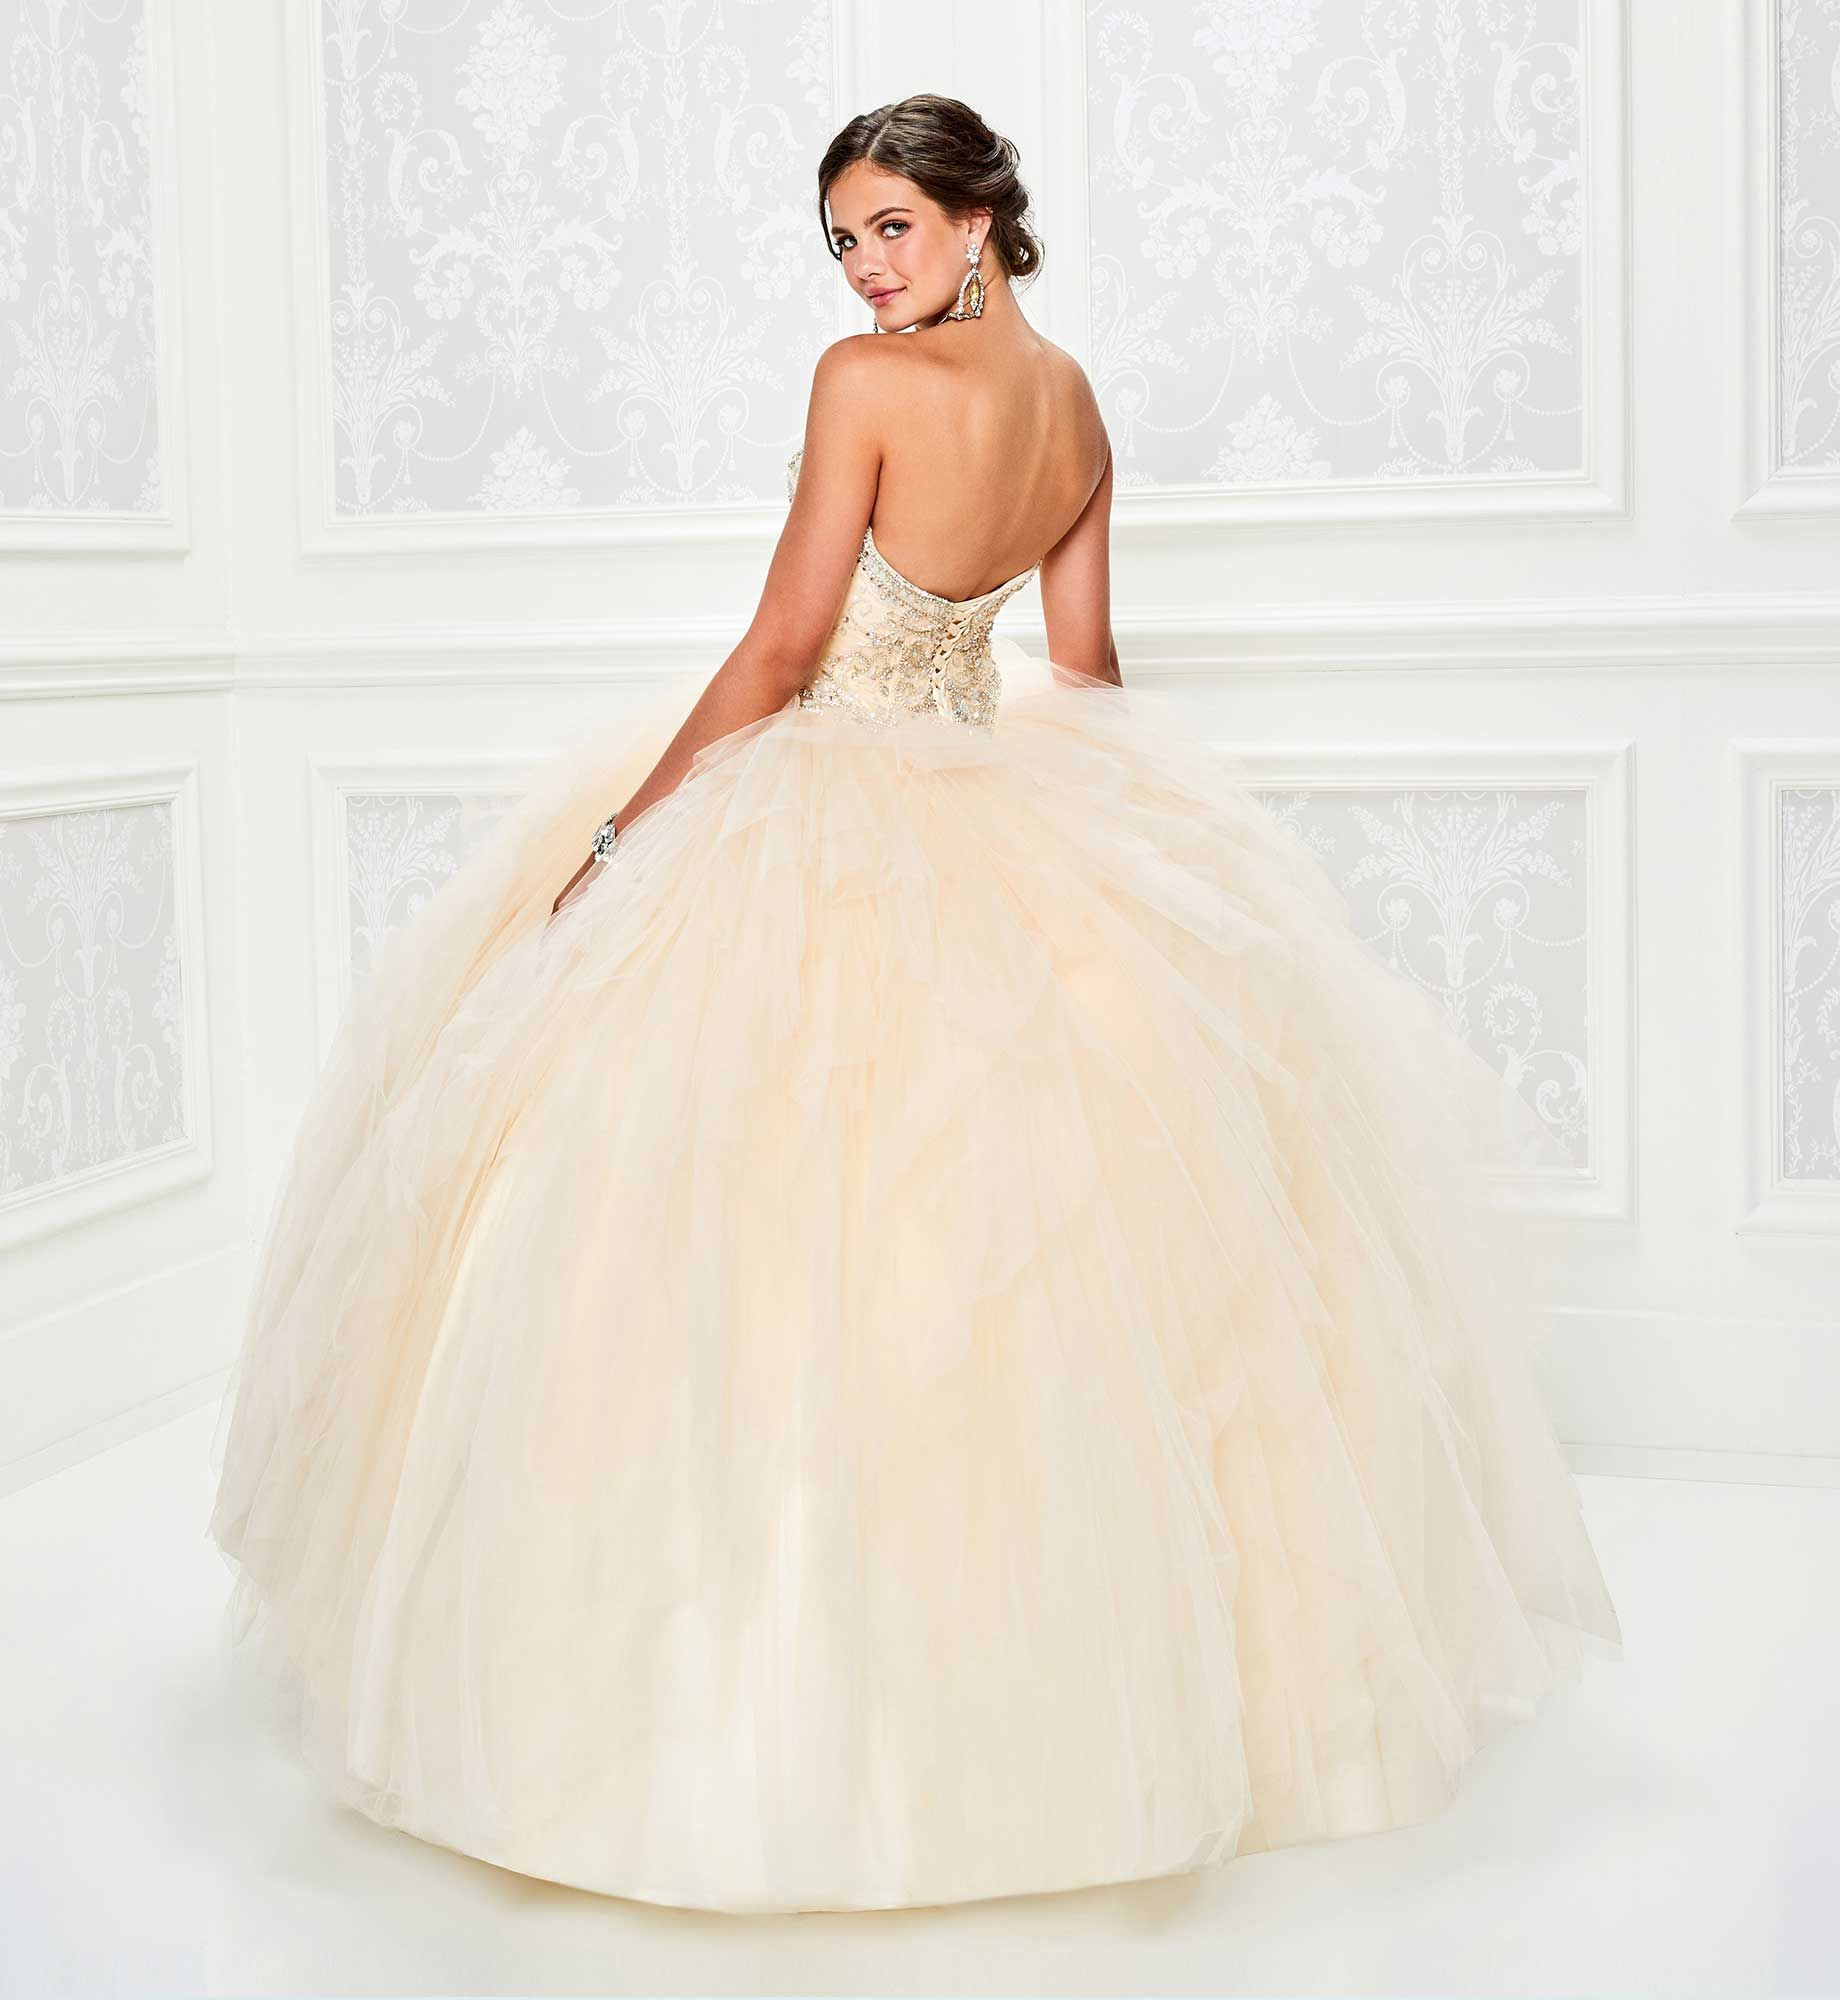 6cdbf98d8 Princesa by Ariana Vara PR11808 - Strapless tulle and satin ball gown,  featuring a sweetheart neckline, beaded bodice, basque waist, tiered tulle  skirt, ...